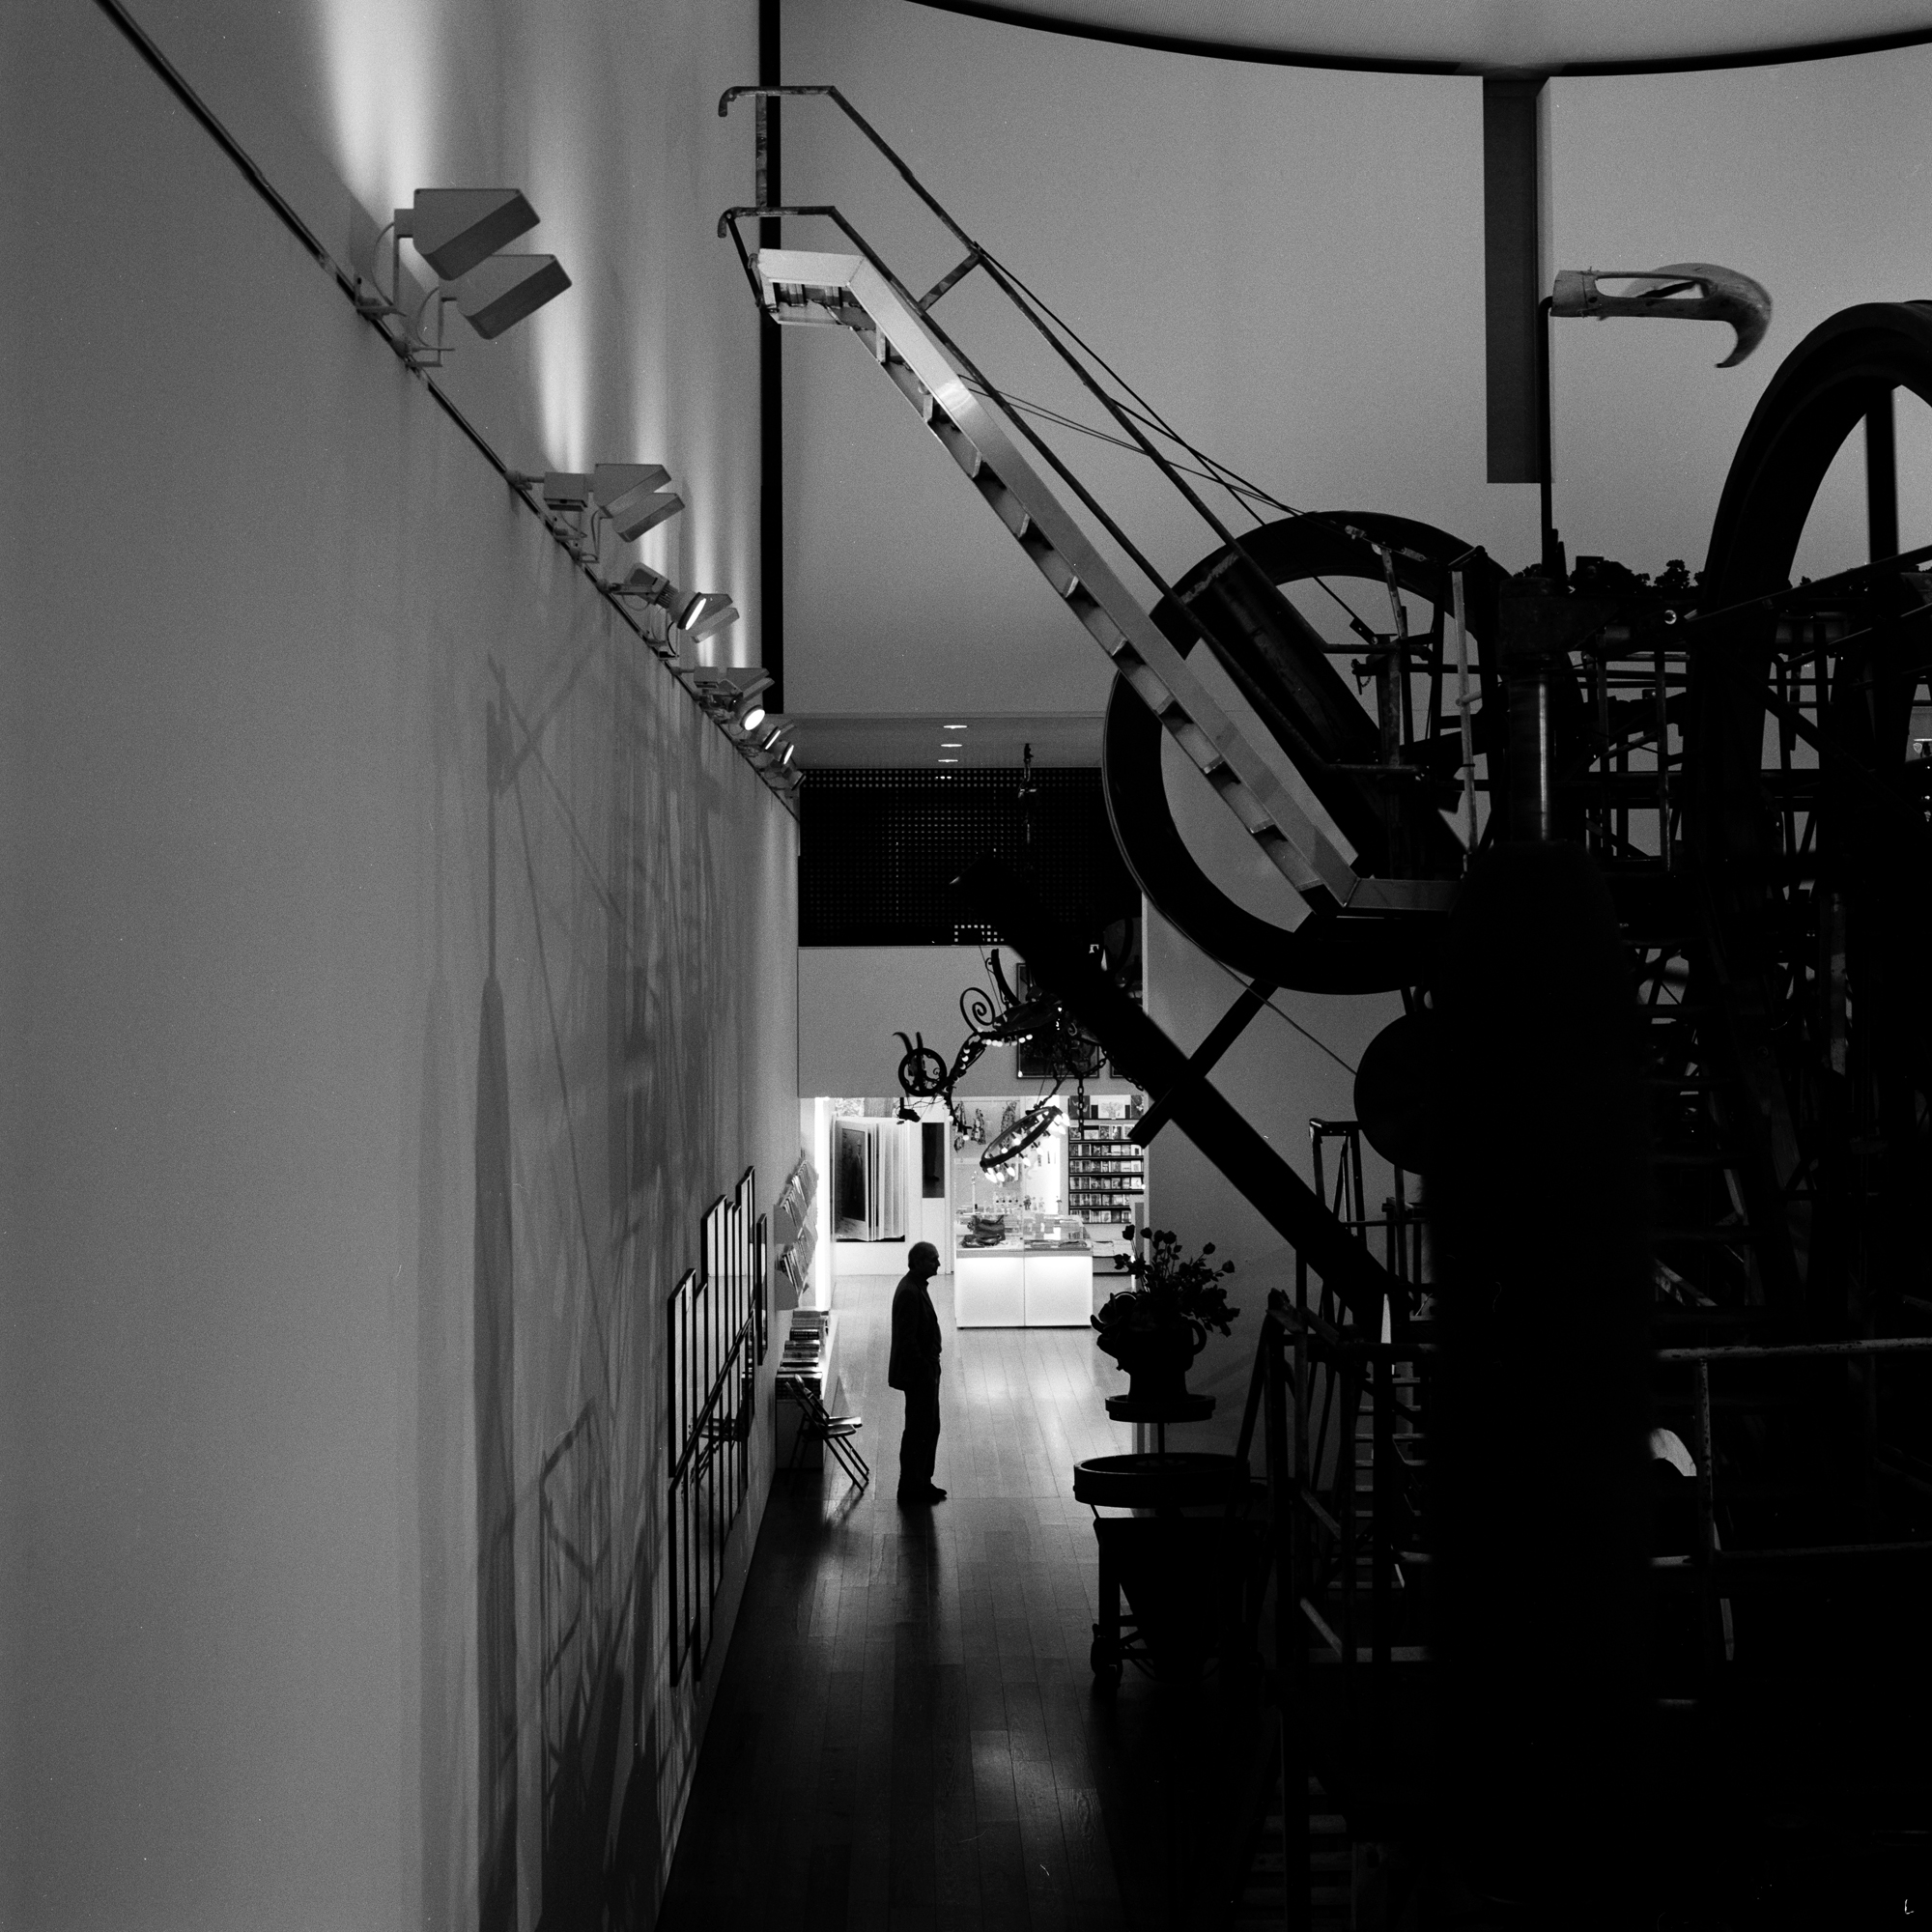 Monographic Museums Jean Tingeuly-01.jpg